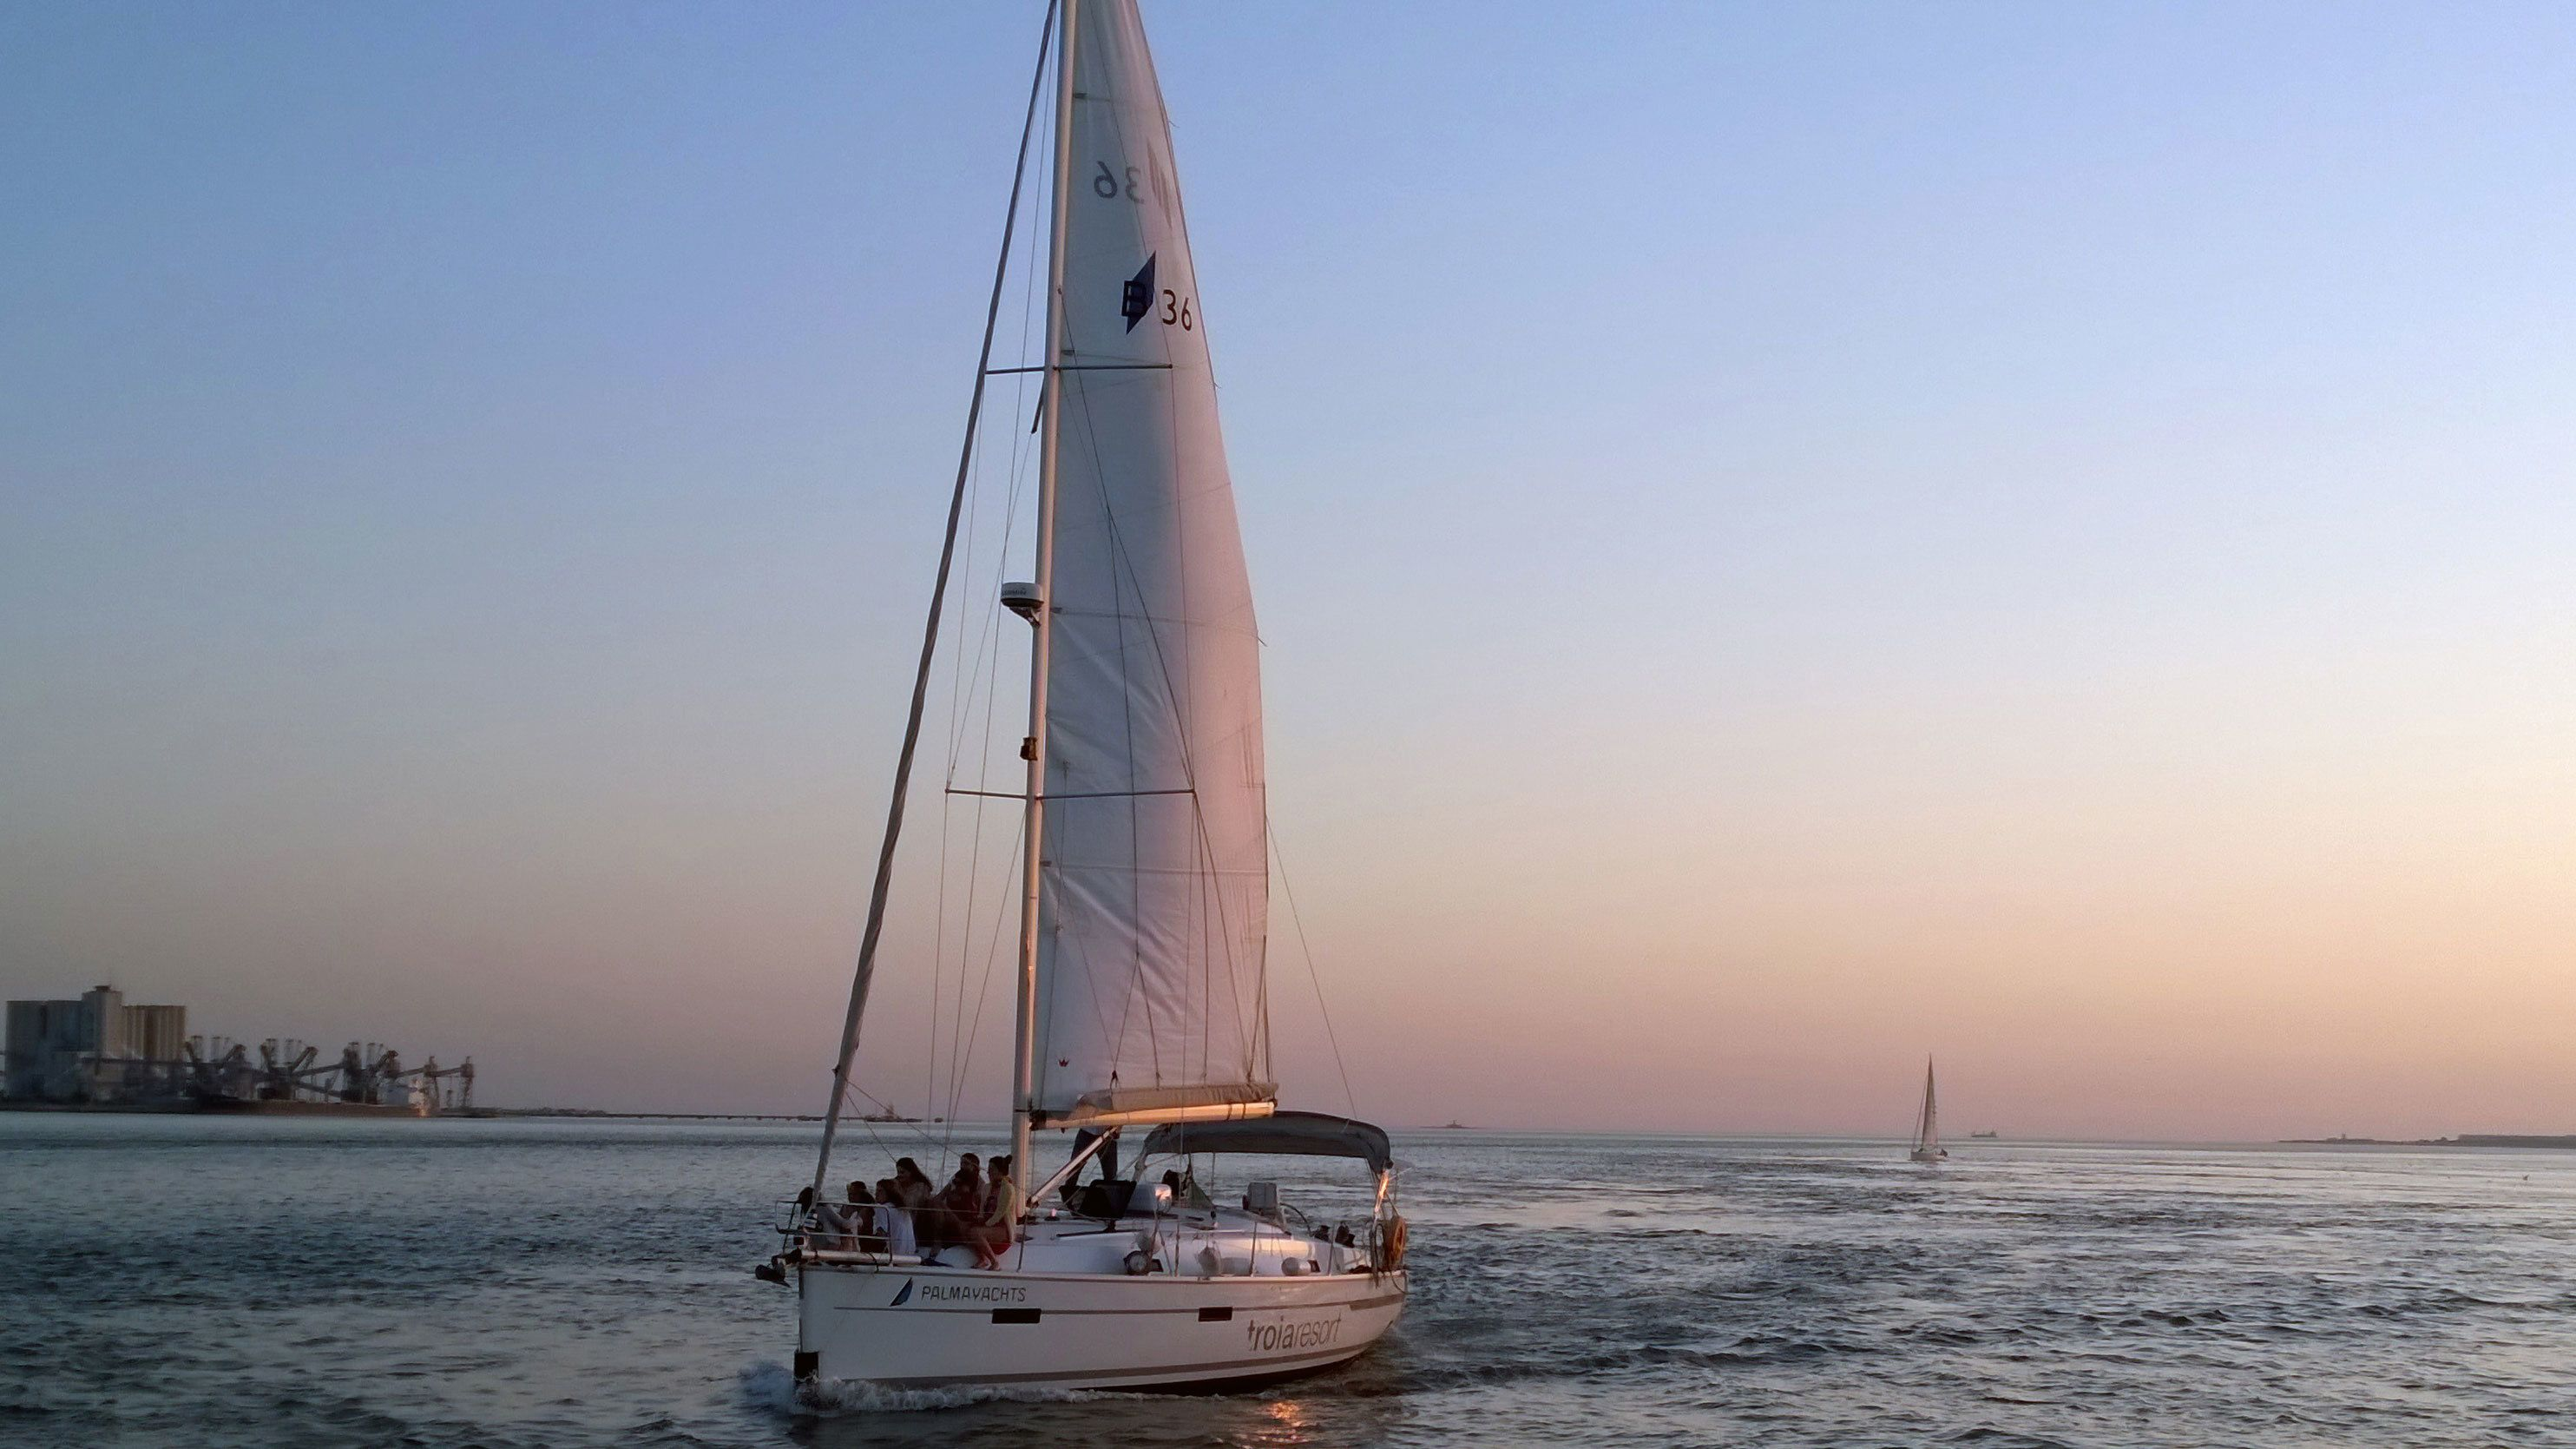 Sail boat tour at sunset in Lisbon